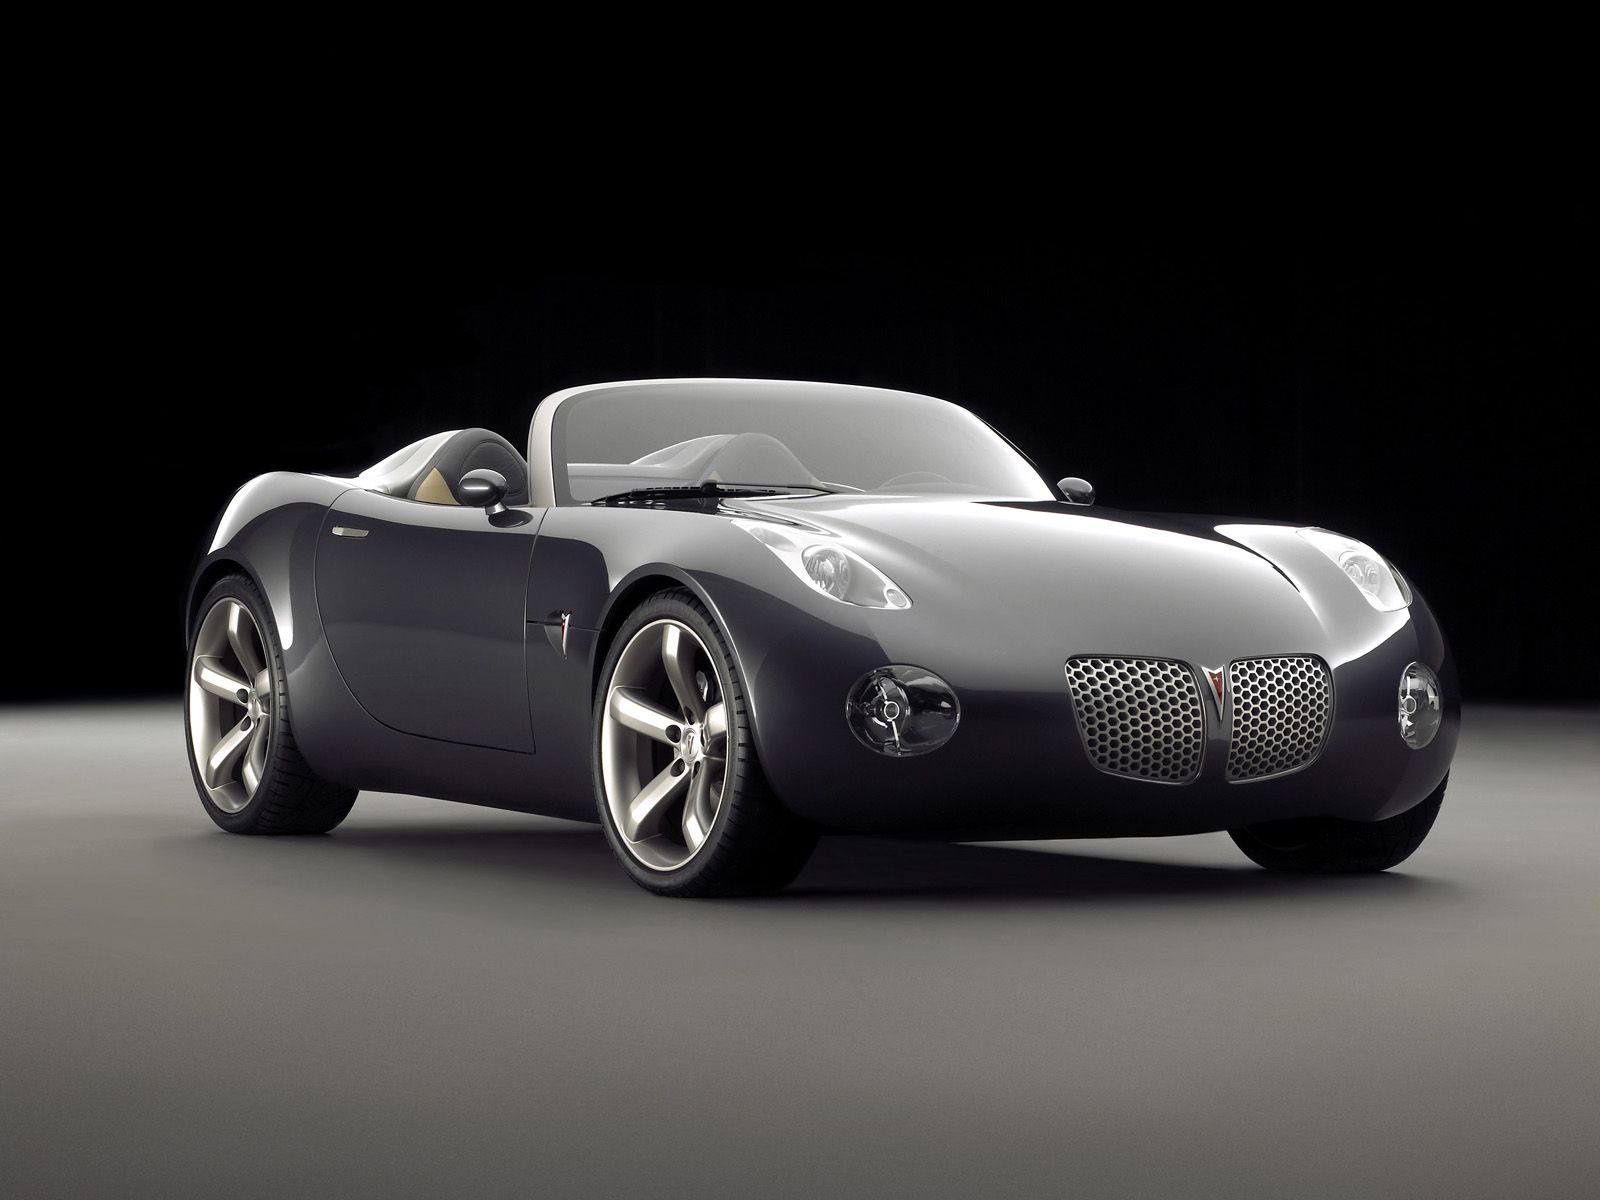 Pontiac Solstice photo 8549